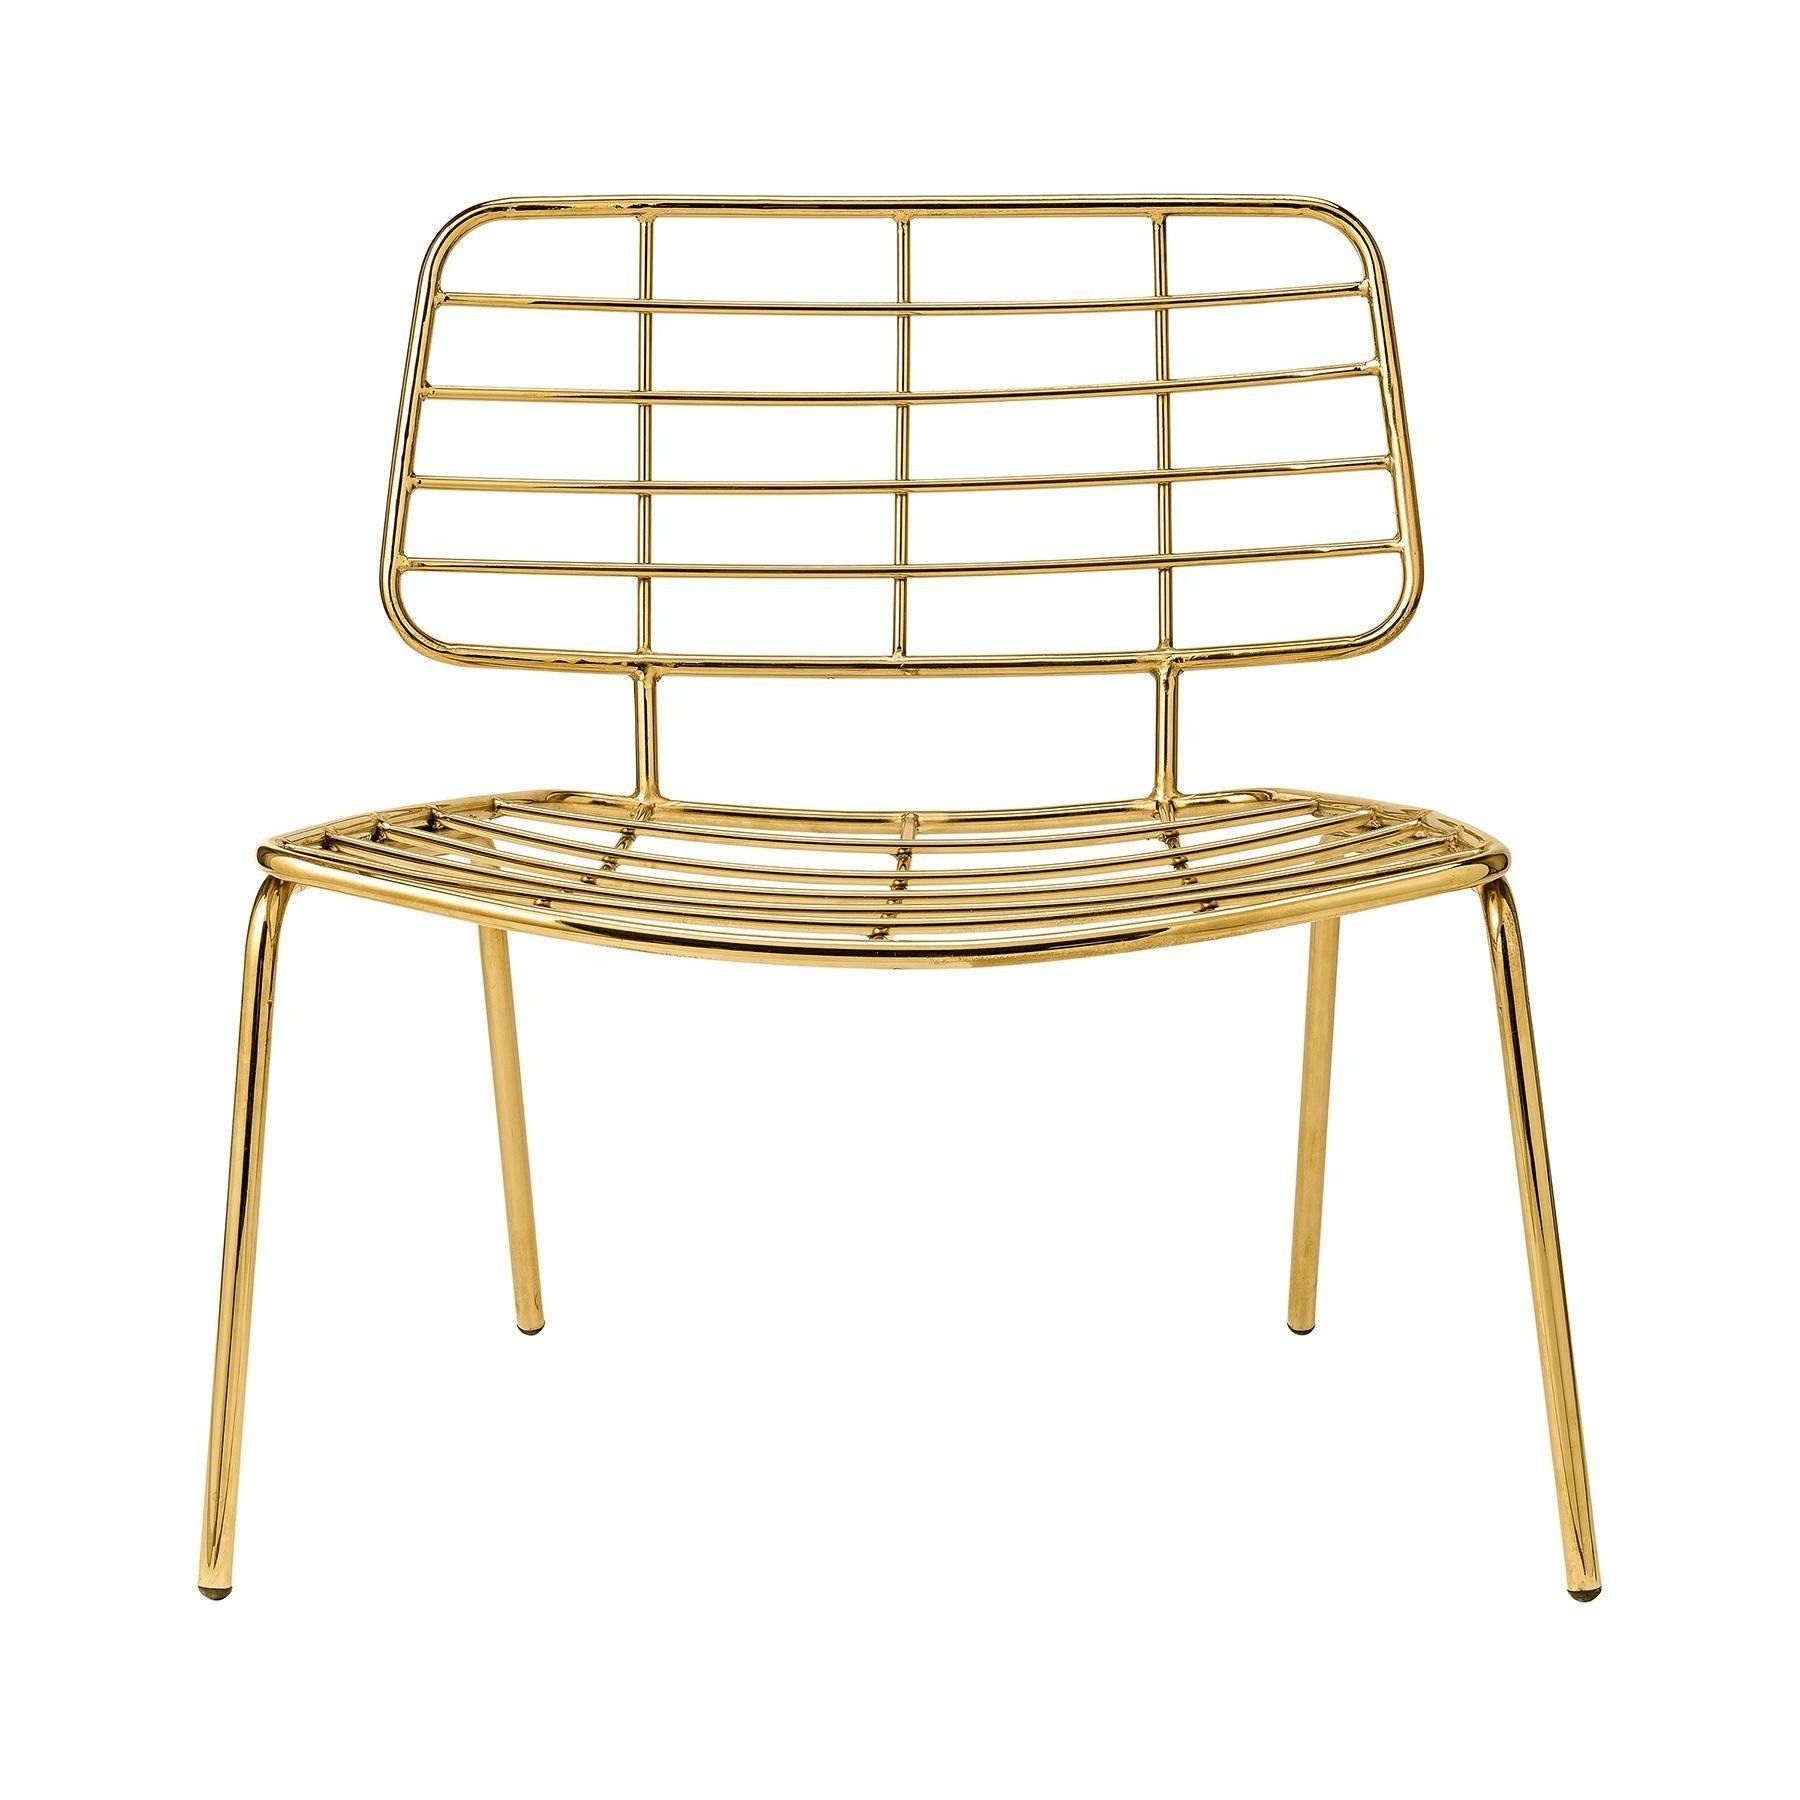 Bloomingville - Mesh Lounge Chair ...  sc 1 st  AmbienteDirect & Bloomingville Mesh Lounge Chair | AmbienteDirect